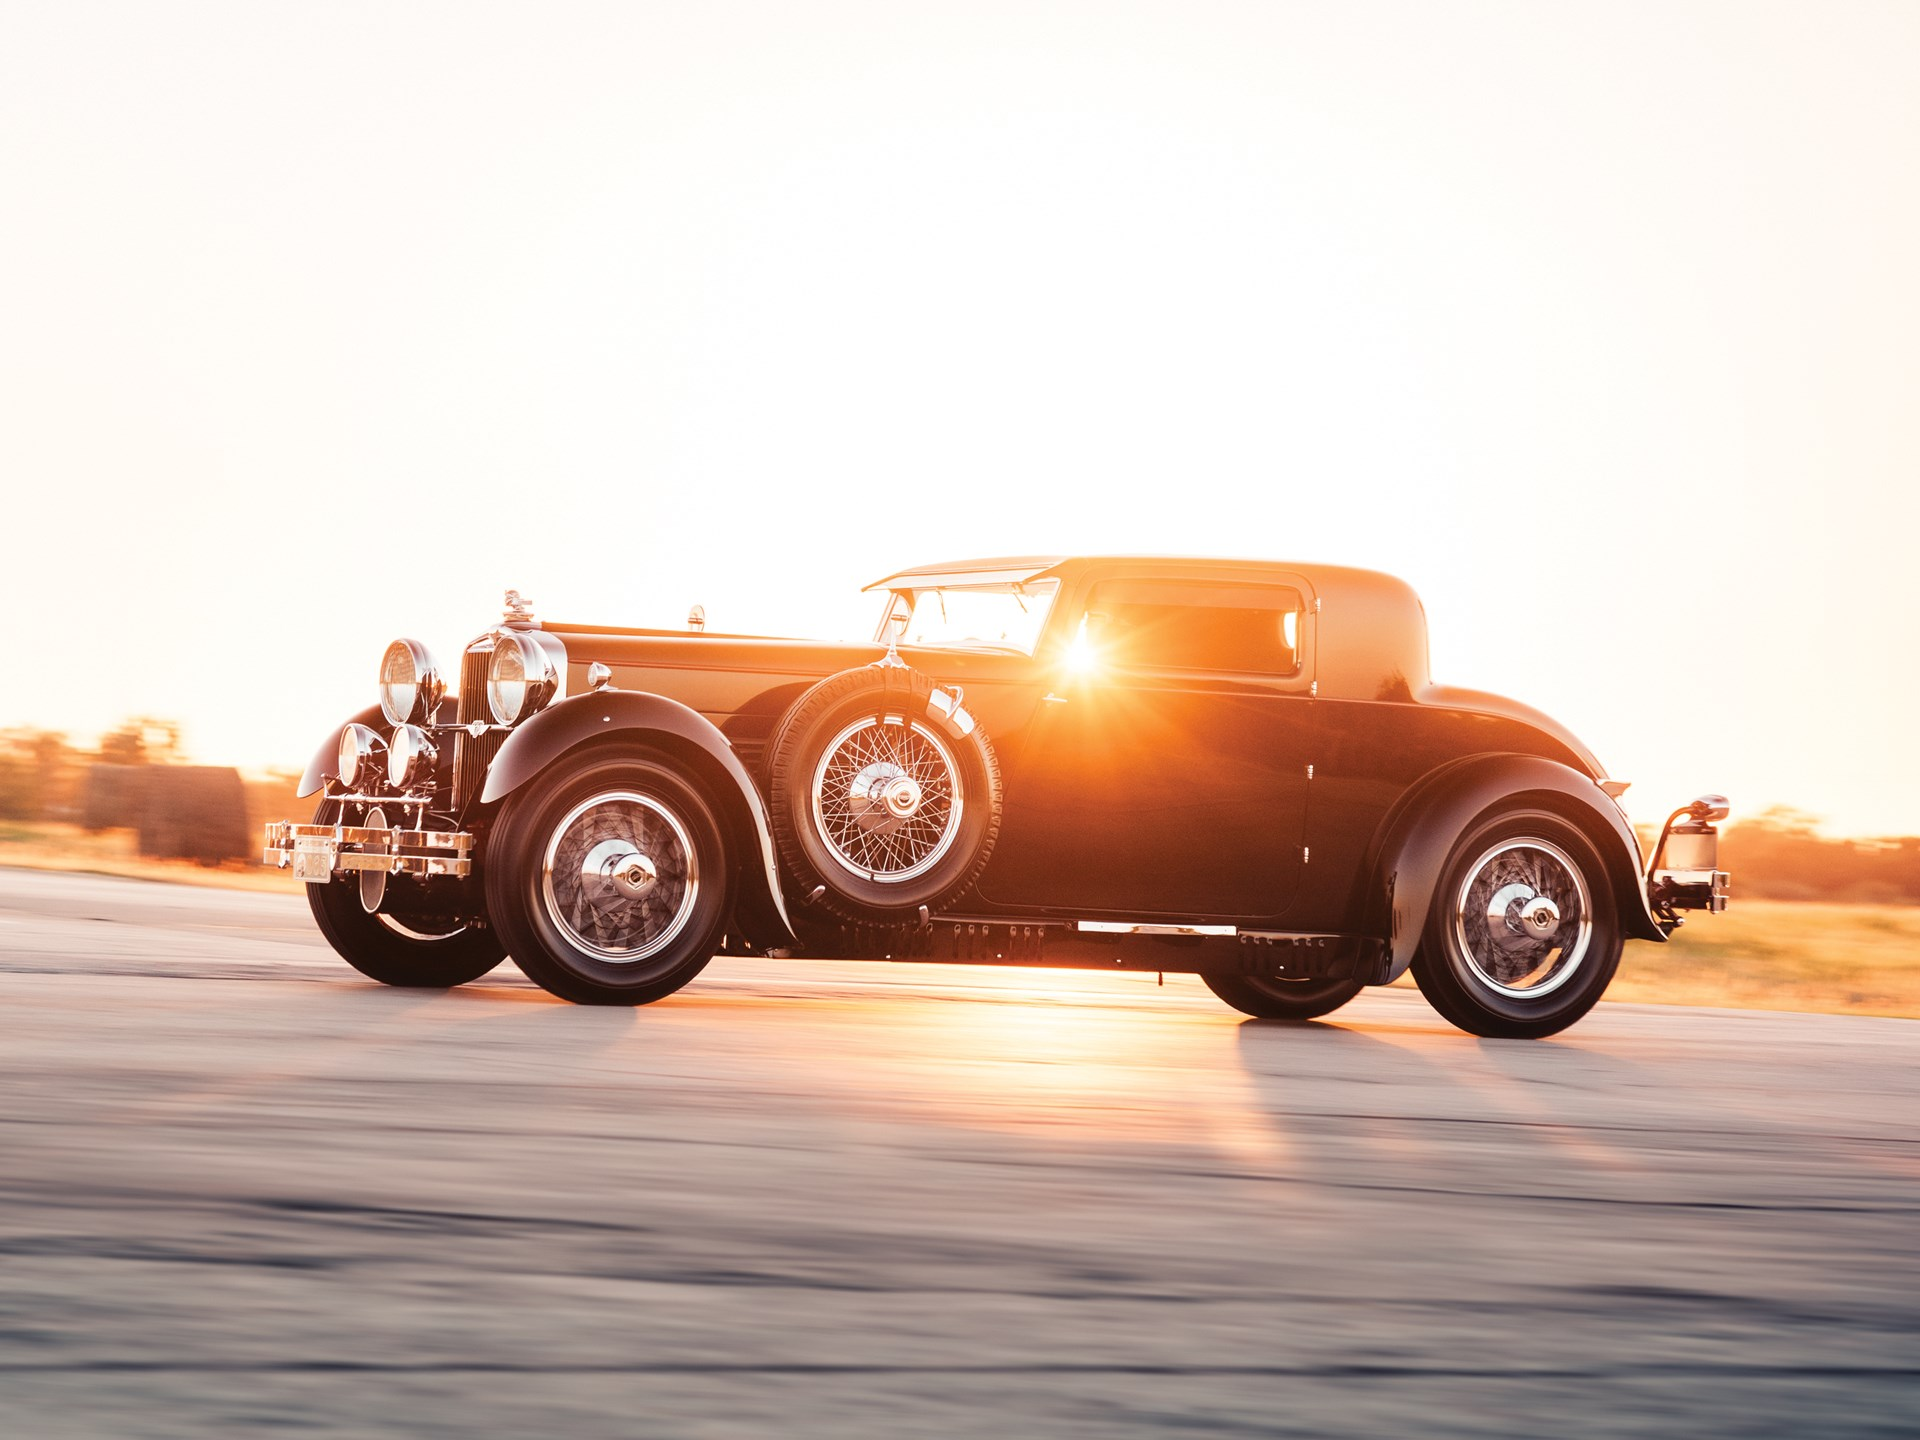 1929 Stutz Model M Supercharged Coupe by Lancefield